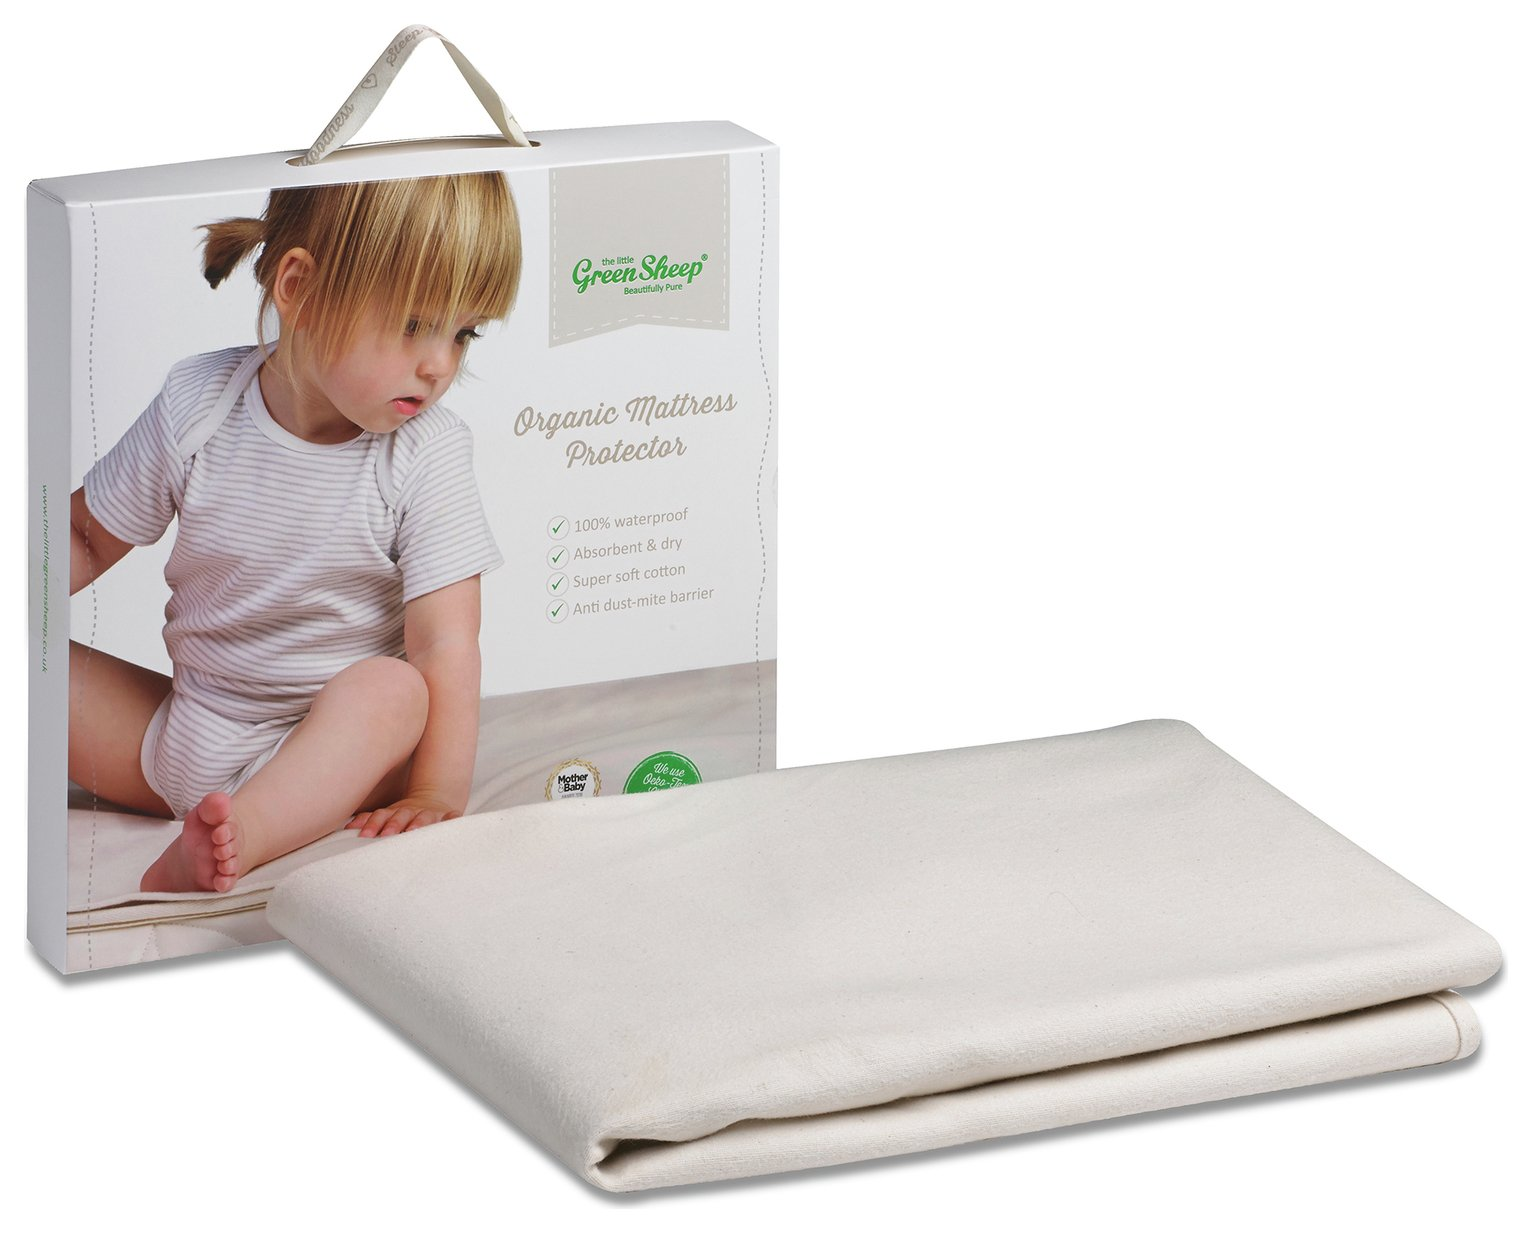 The Little Green Sheep Cot Bed Mattress Protector